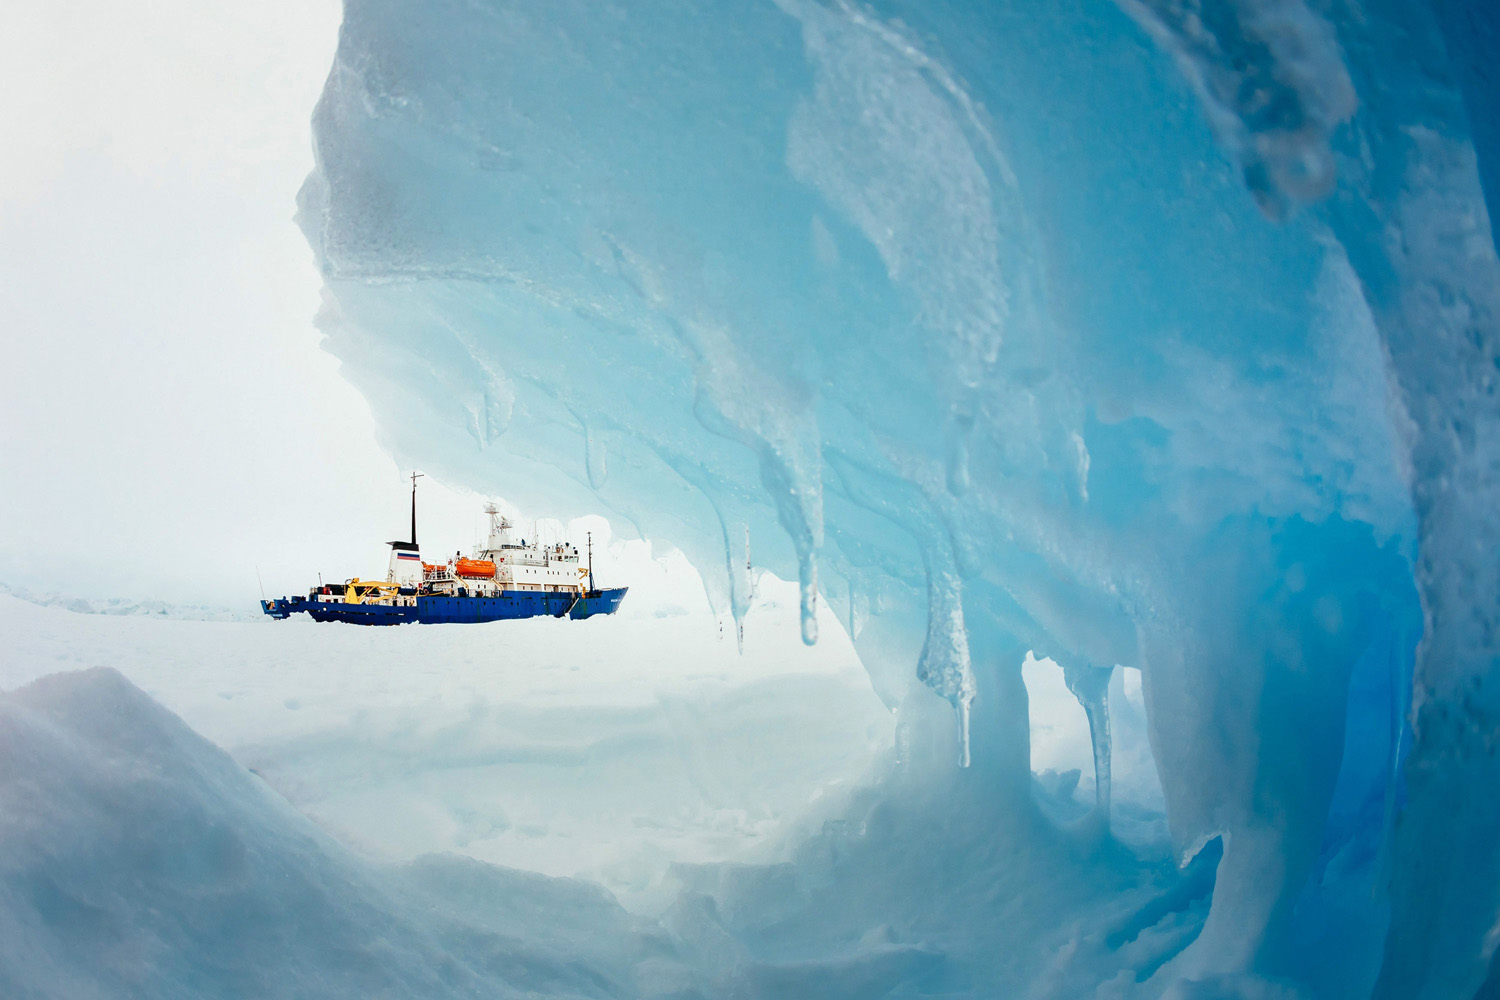 Dec. 29, 2013. The Russia ship, MV Akademik Shokalskiy, is pictured stranded in ice in Antarctica.